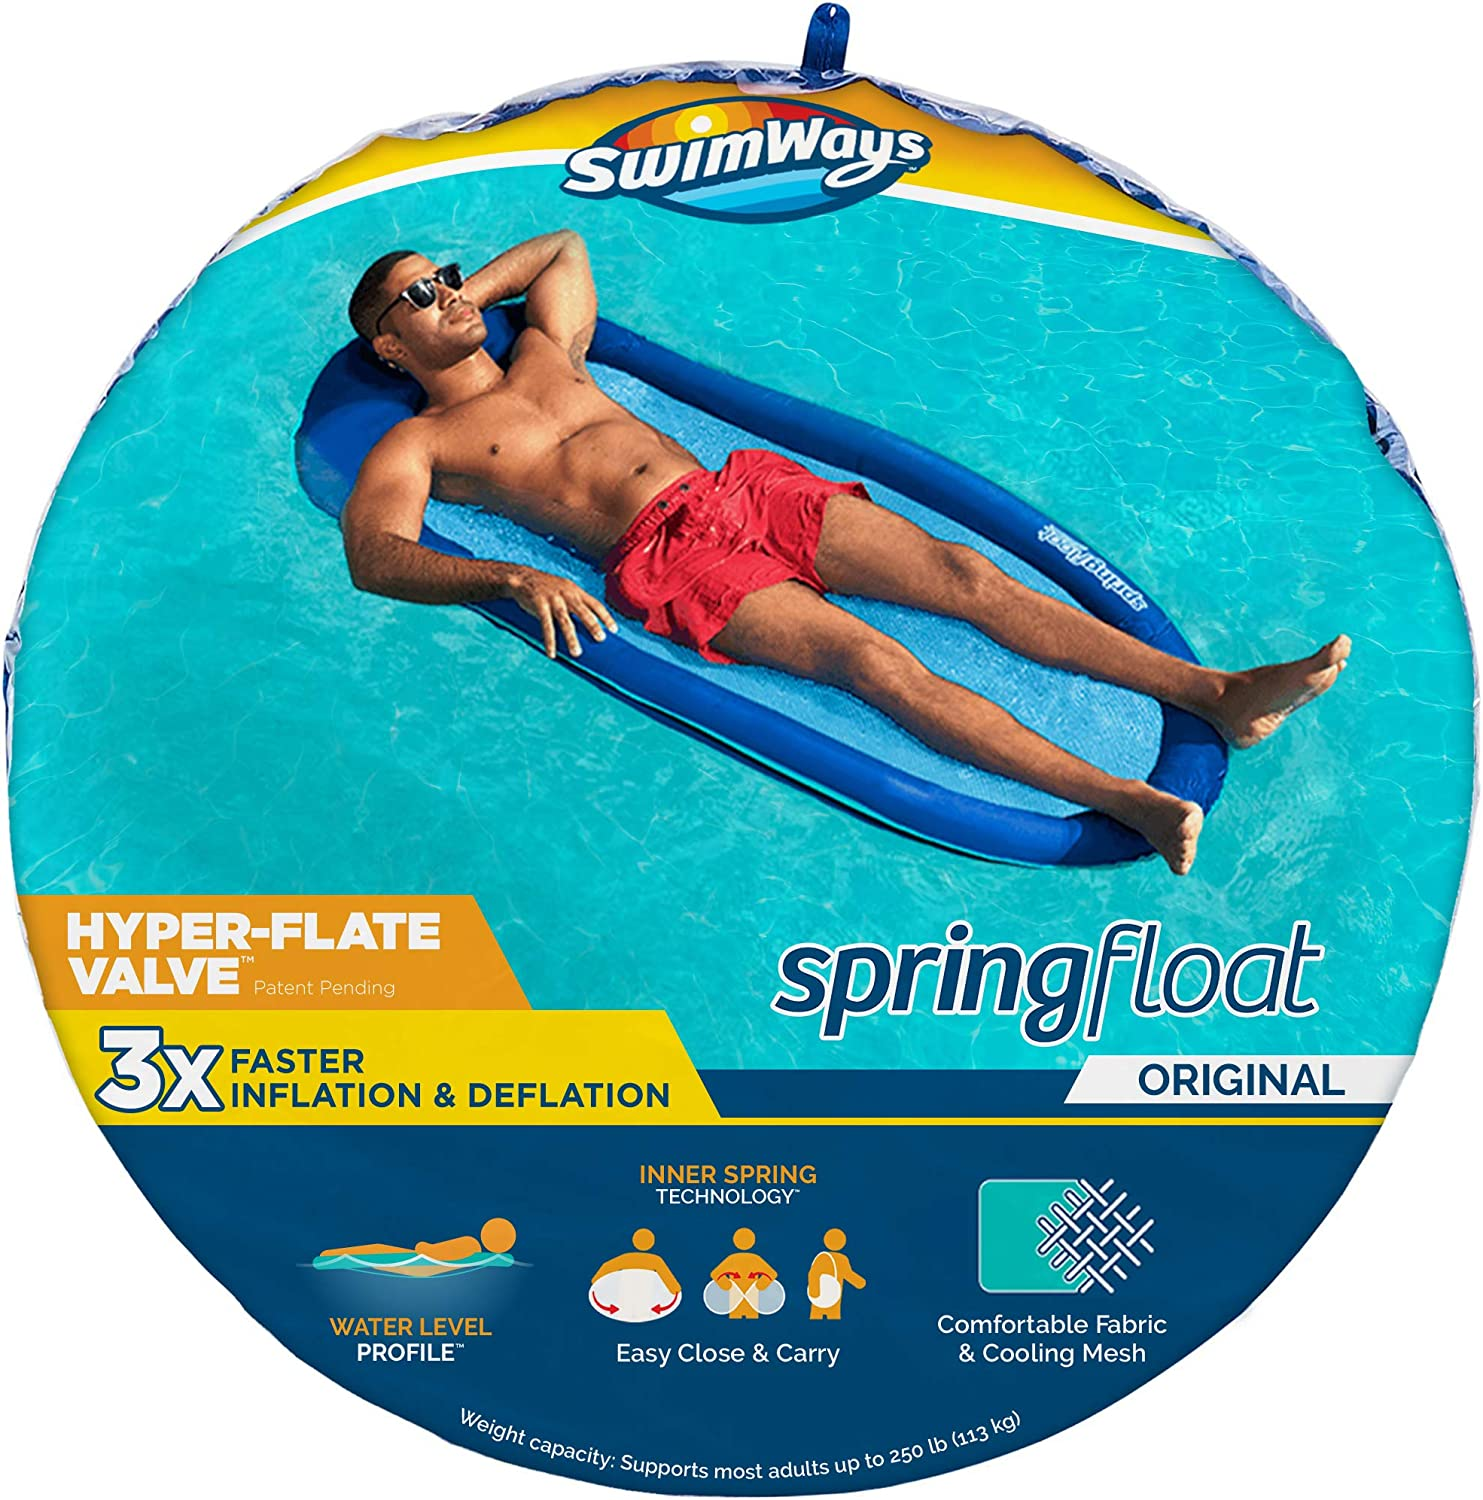 """SwimWays Spring Float Inflatable Pool Lounger with Hyper-Flate Valve, Blue, 69""""L x 35""""W x 5.5""""H"""